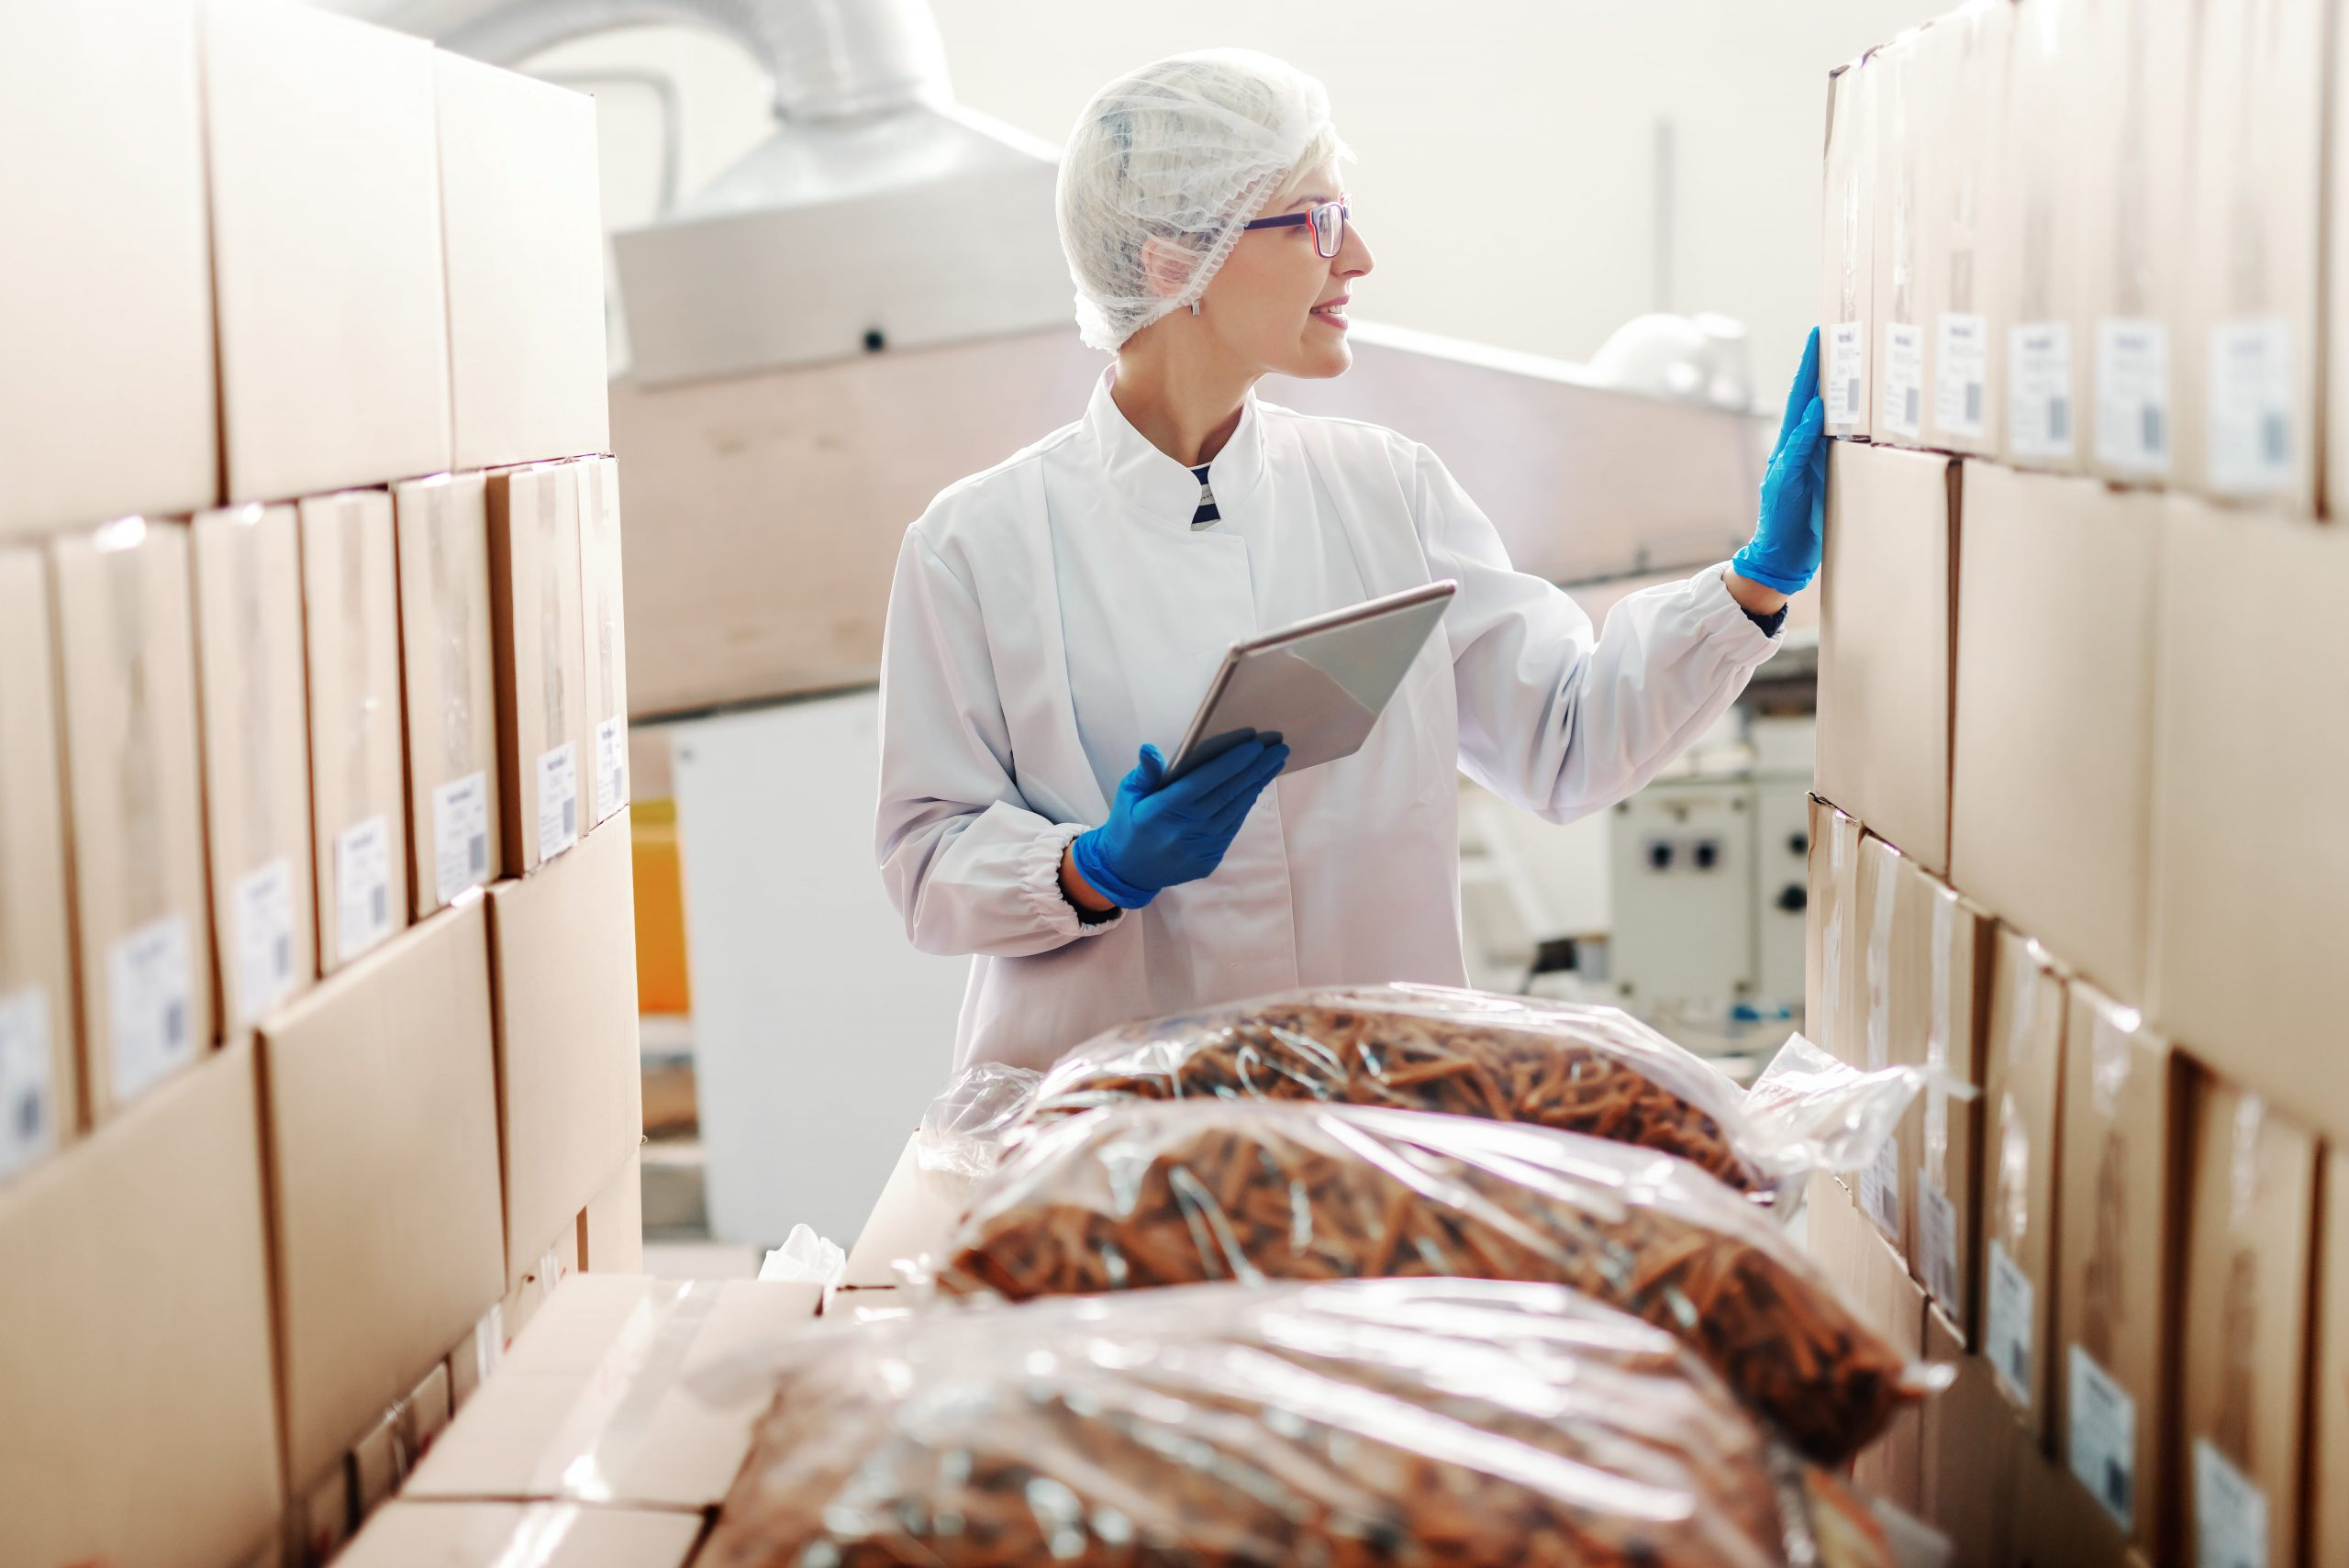 How Food Distributors Can Improve Traceability